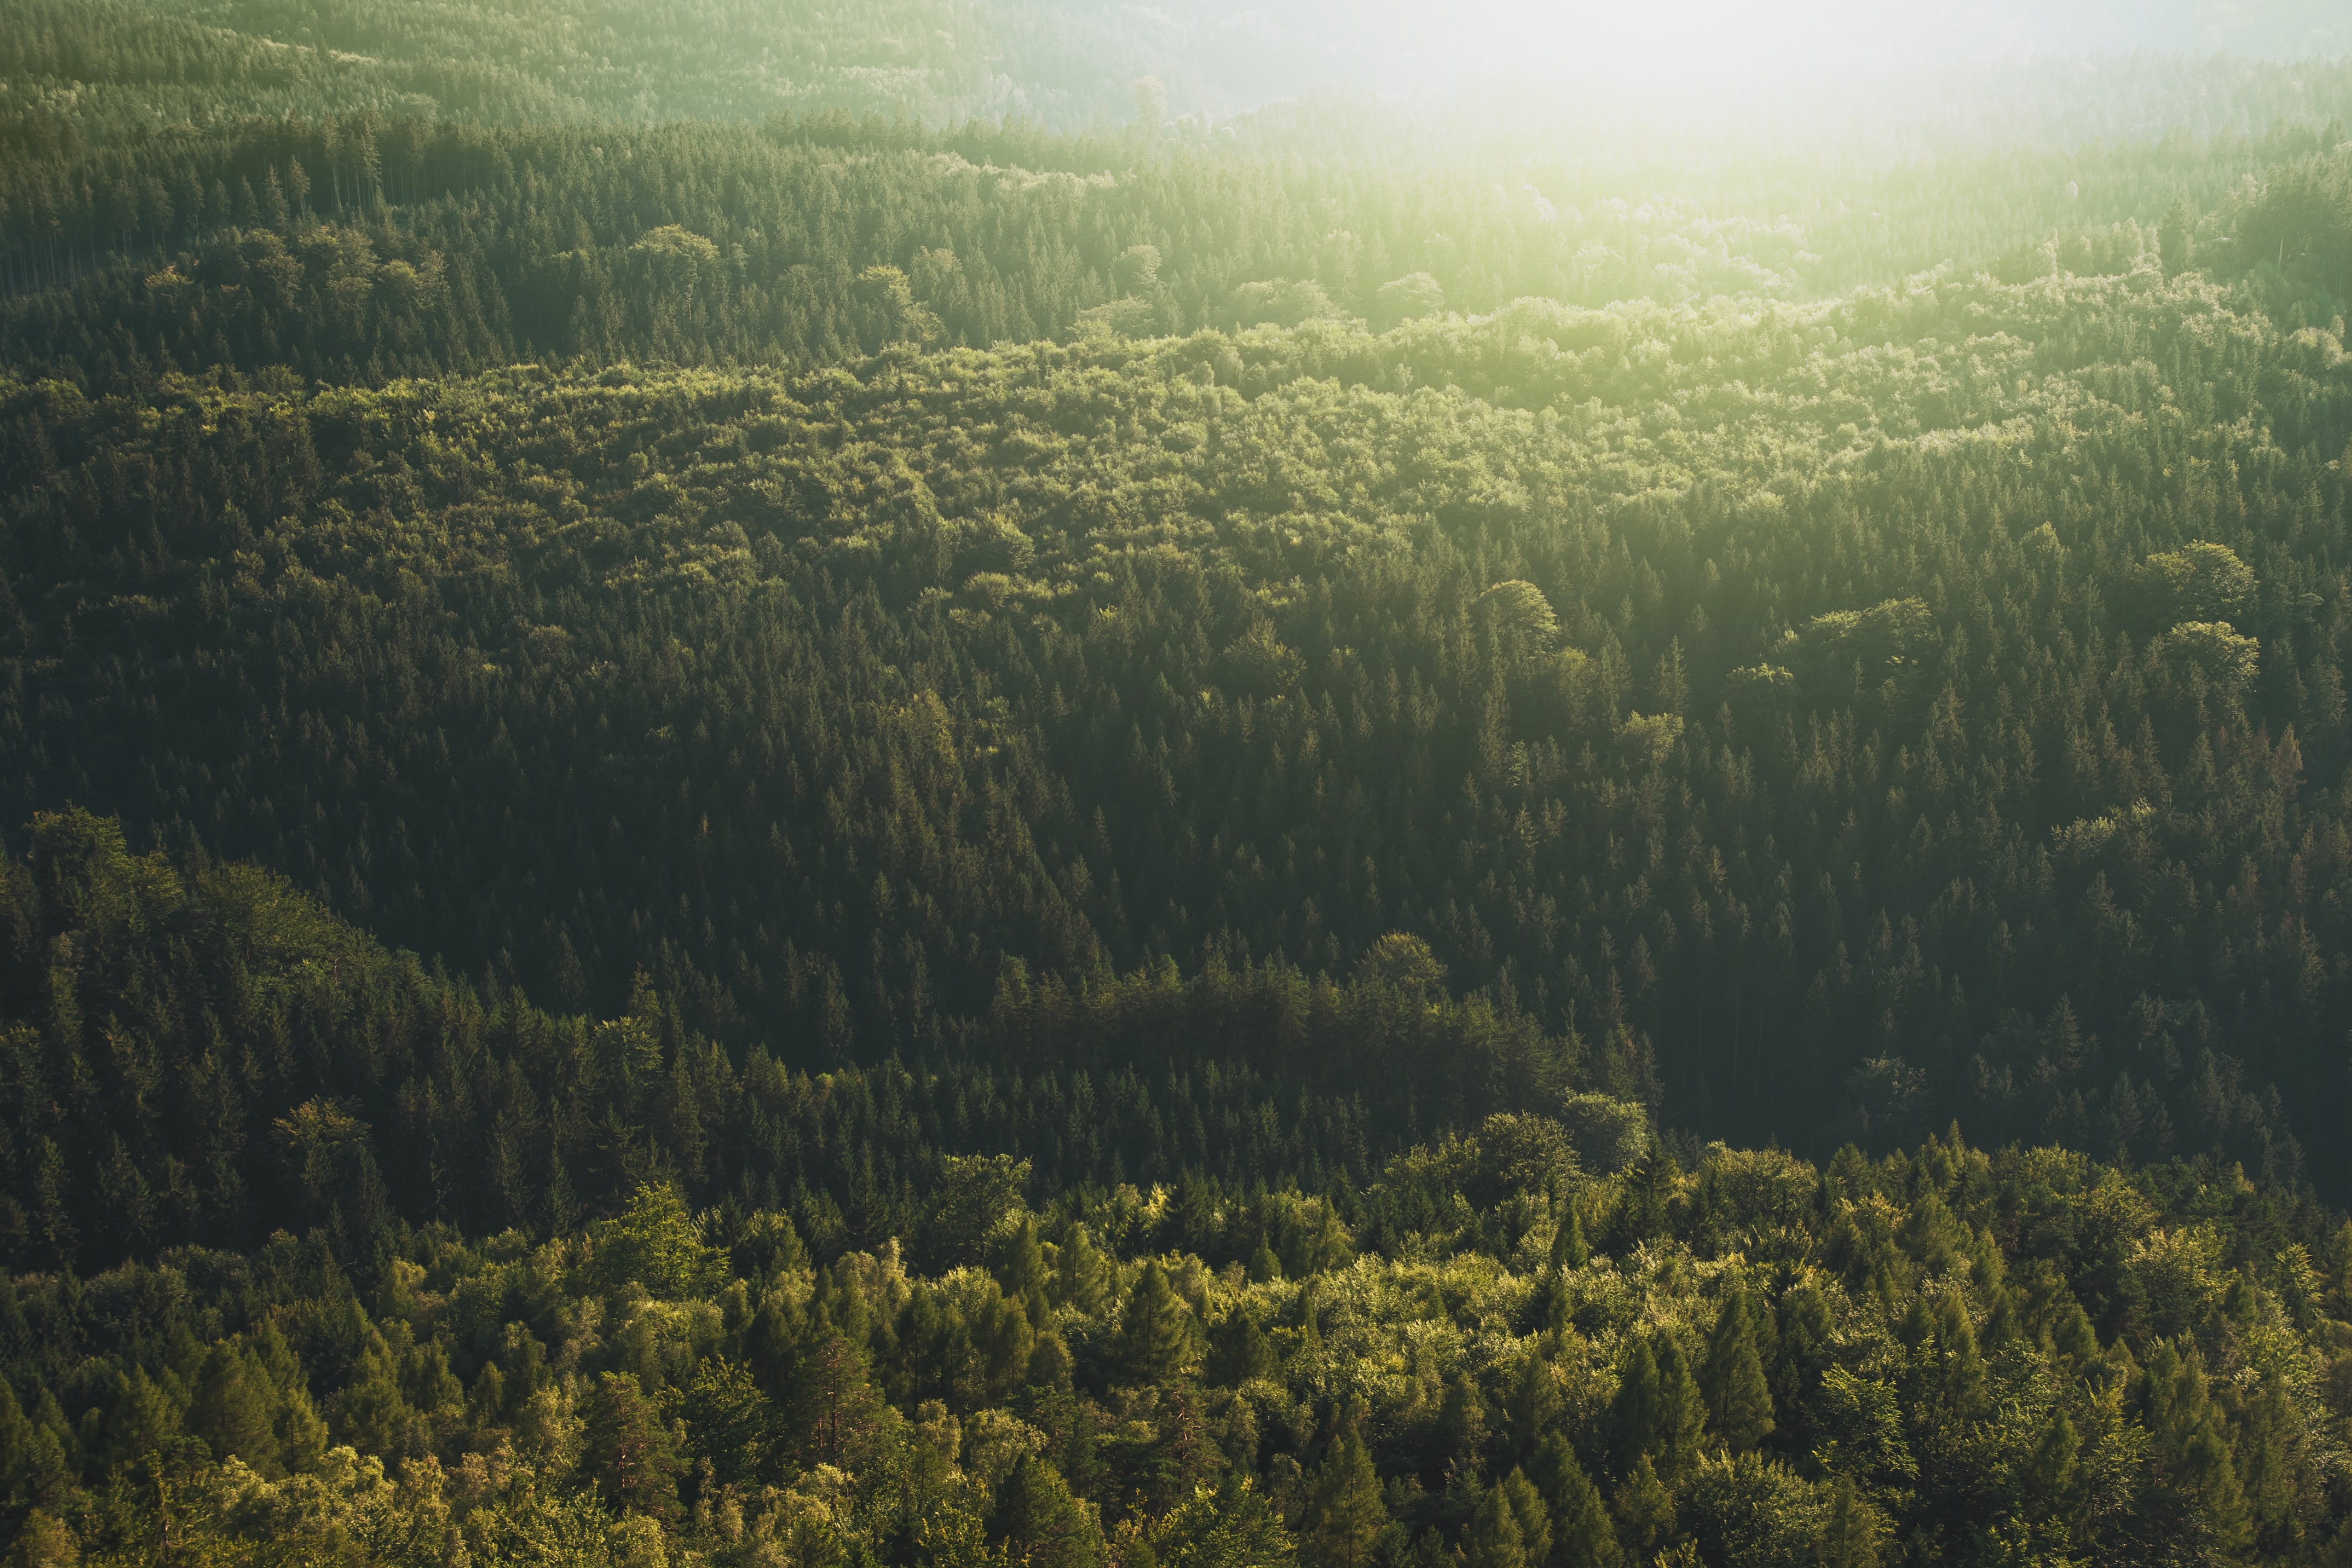 Sun shines on the horizon over a green forest landscape